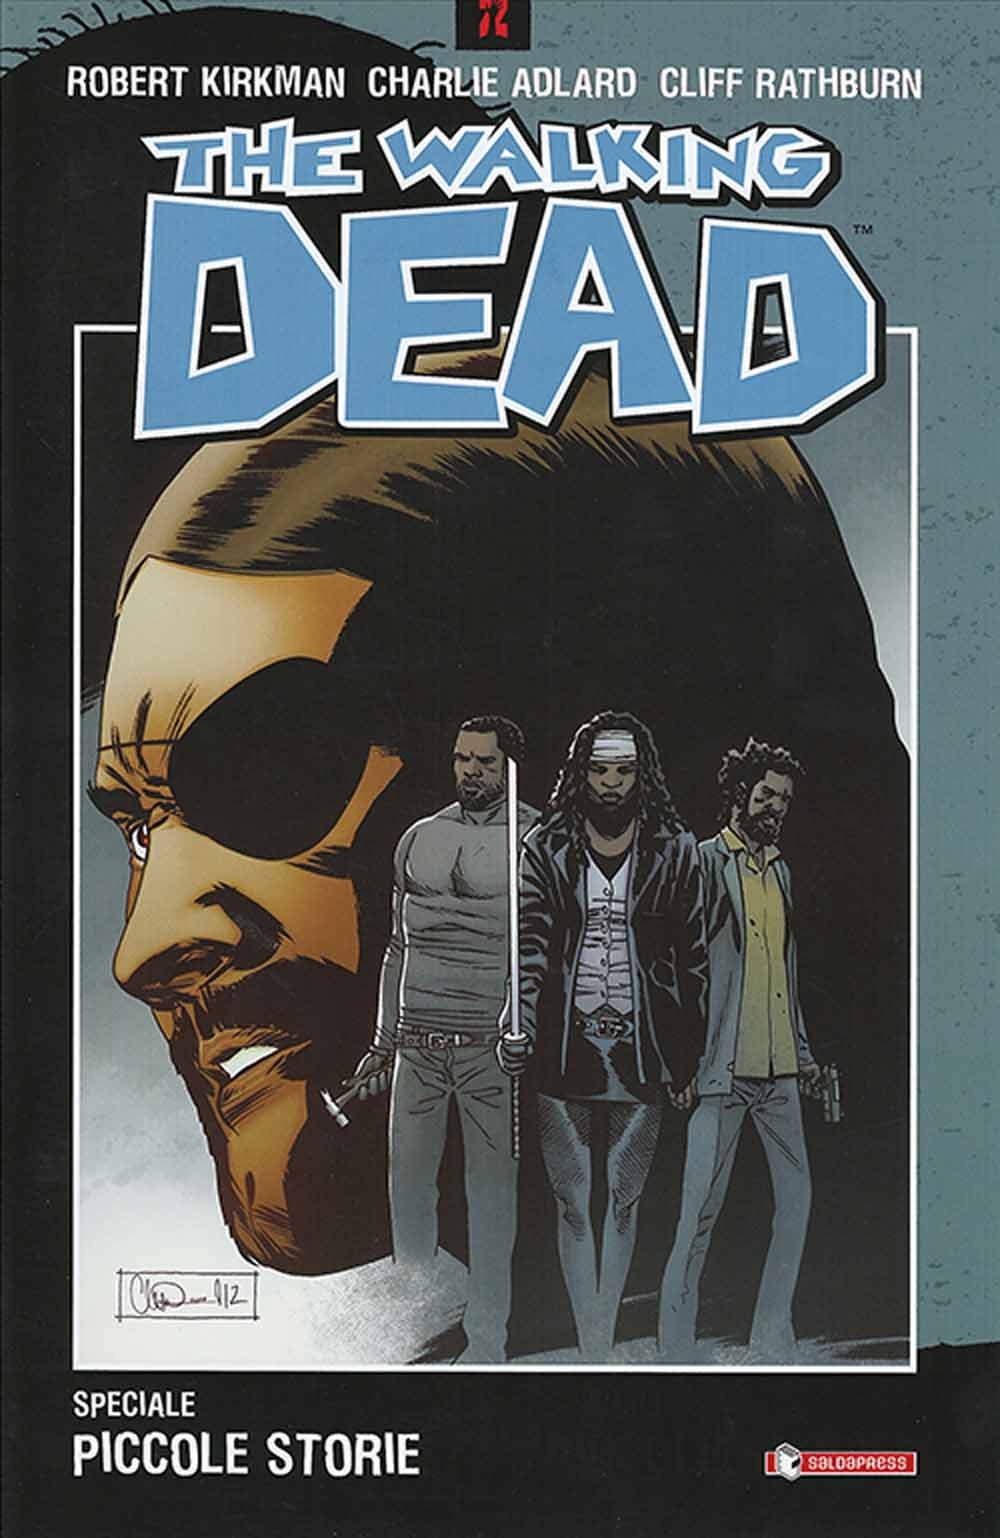 THE WALKING DEAD  SPECIALE - PICCOLE STORIE